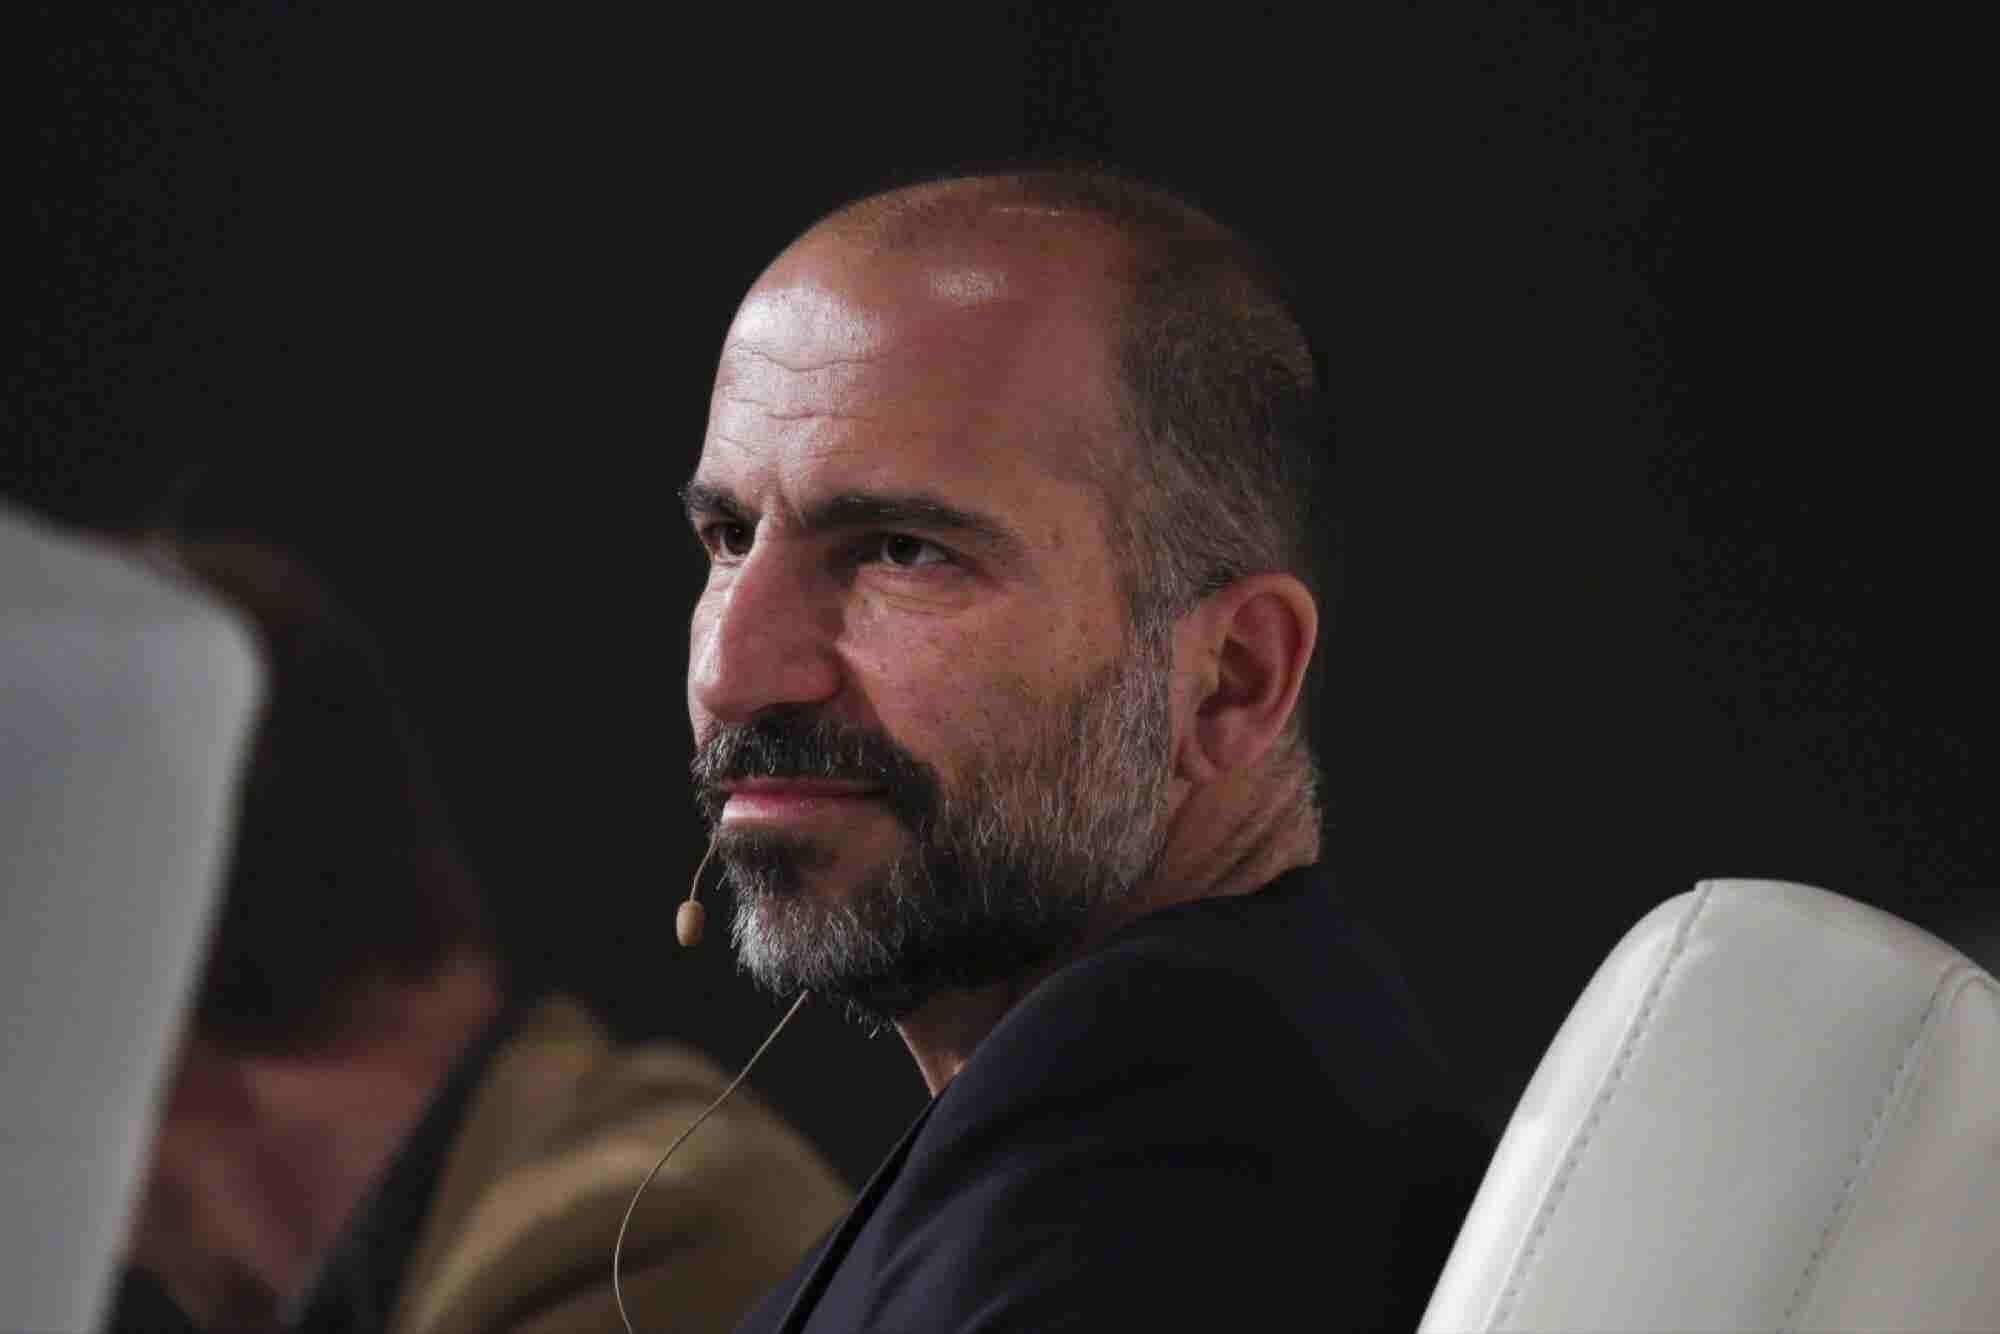 What Uber's New CEO Needs to Do to Change the Narrative and Restore Confidence in the Company